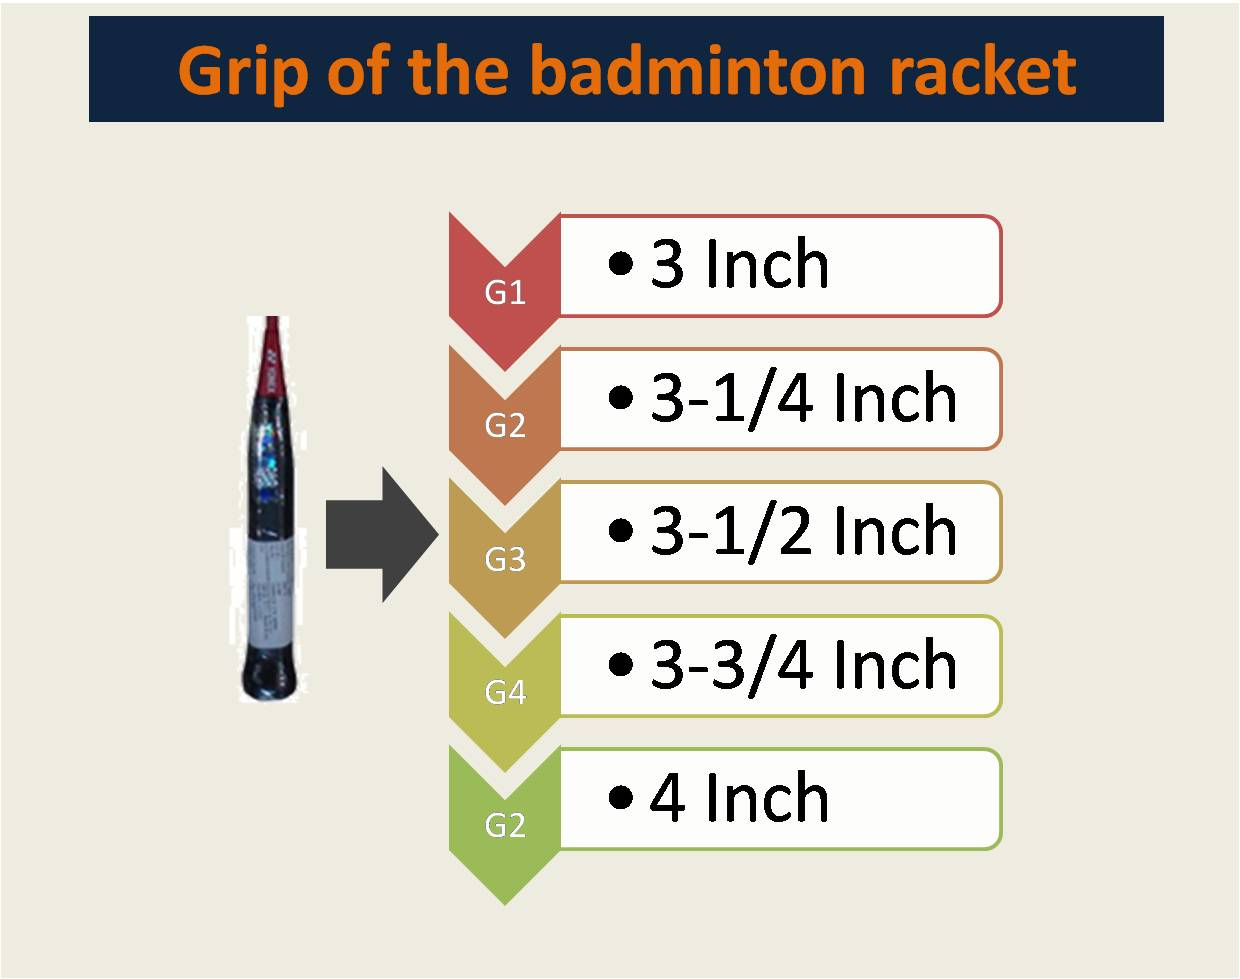 Grip of the badminton racket